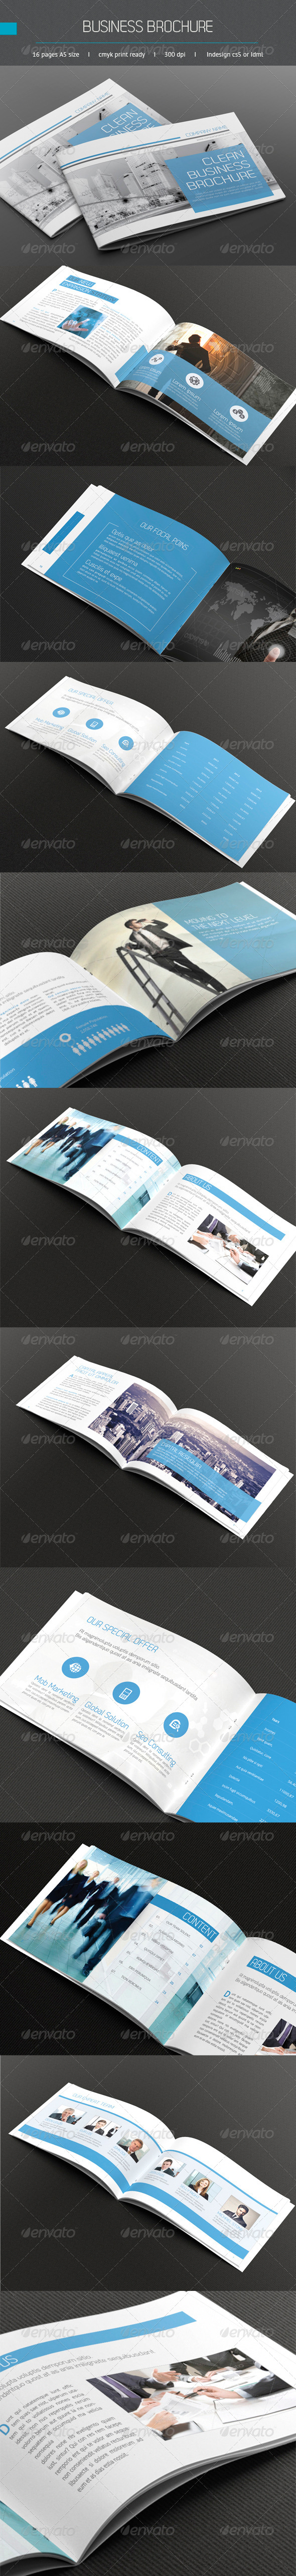 GraphicRiver Business Brochure A5 5946648